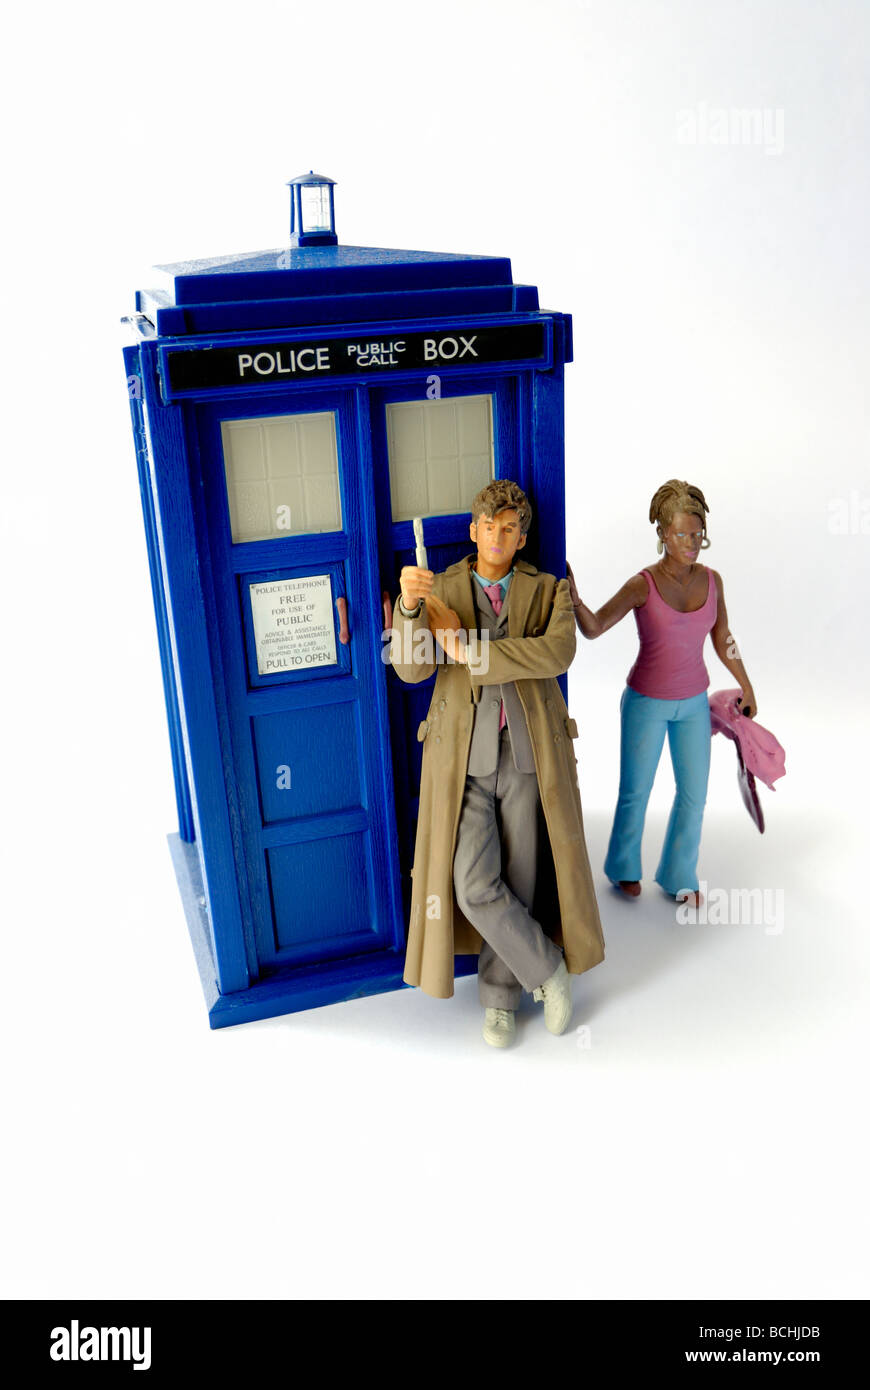 Dr Who with Tardis toy - Stock Image